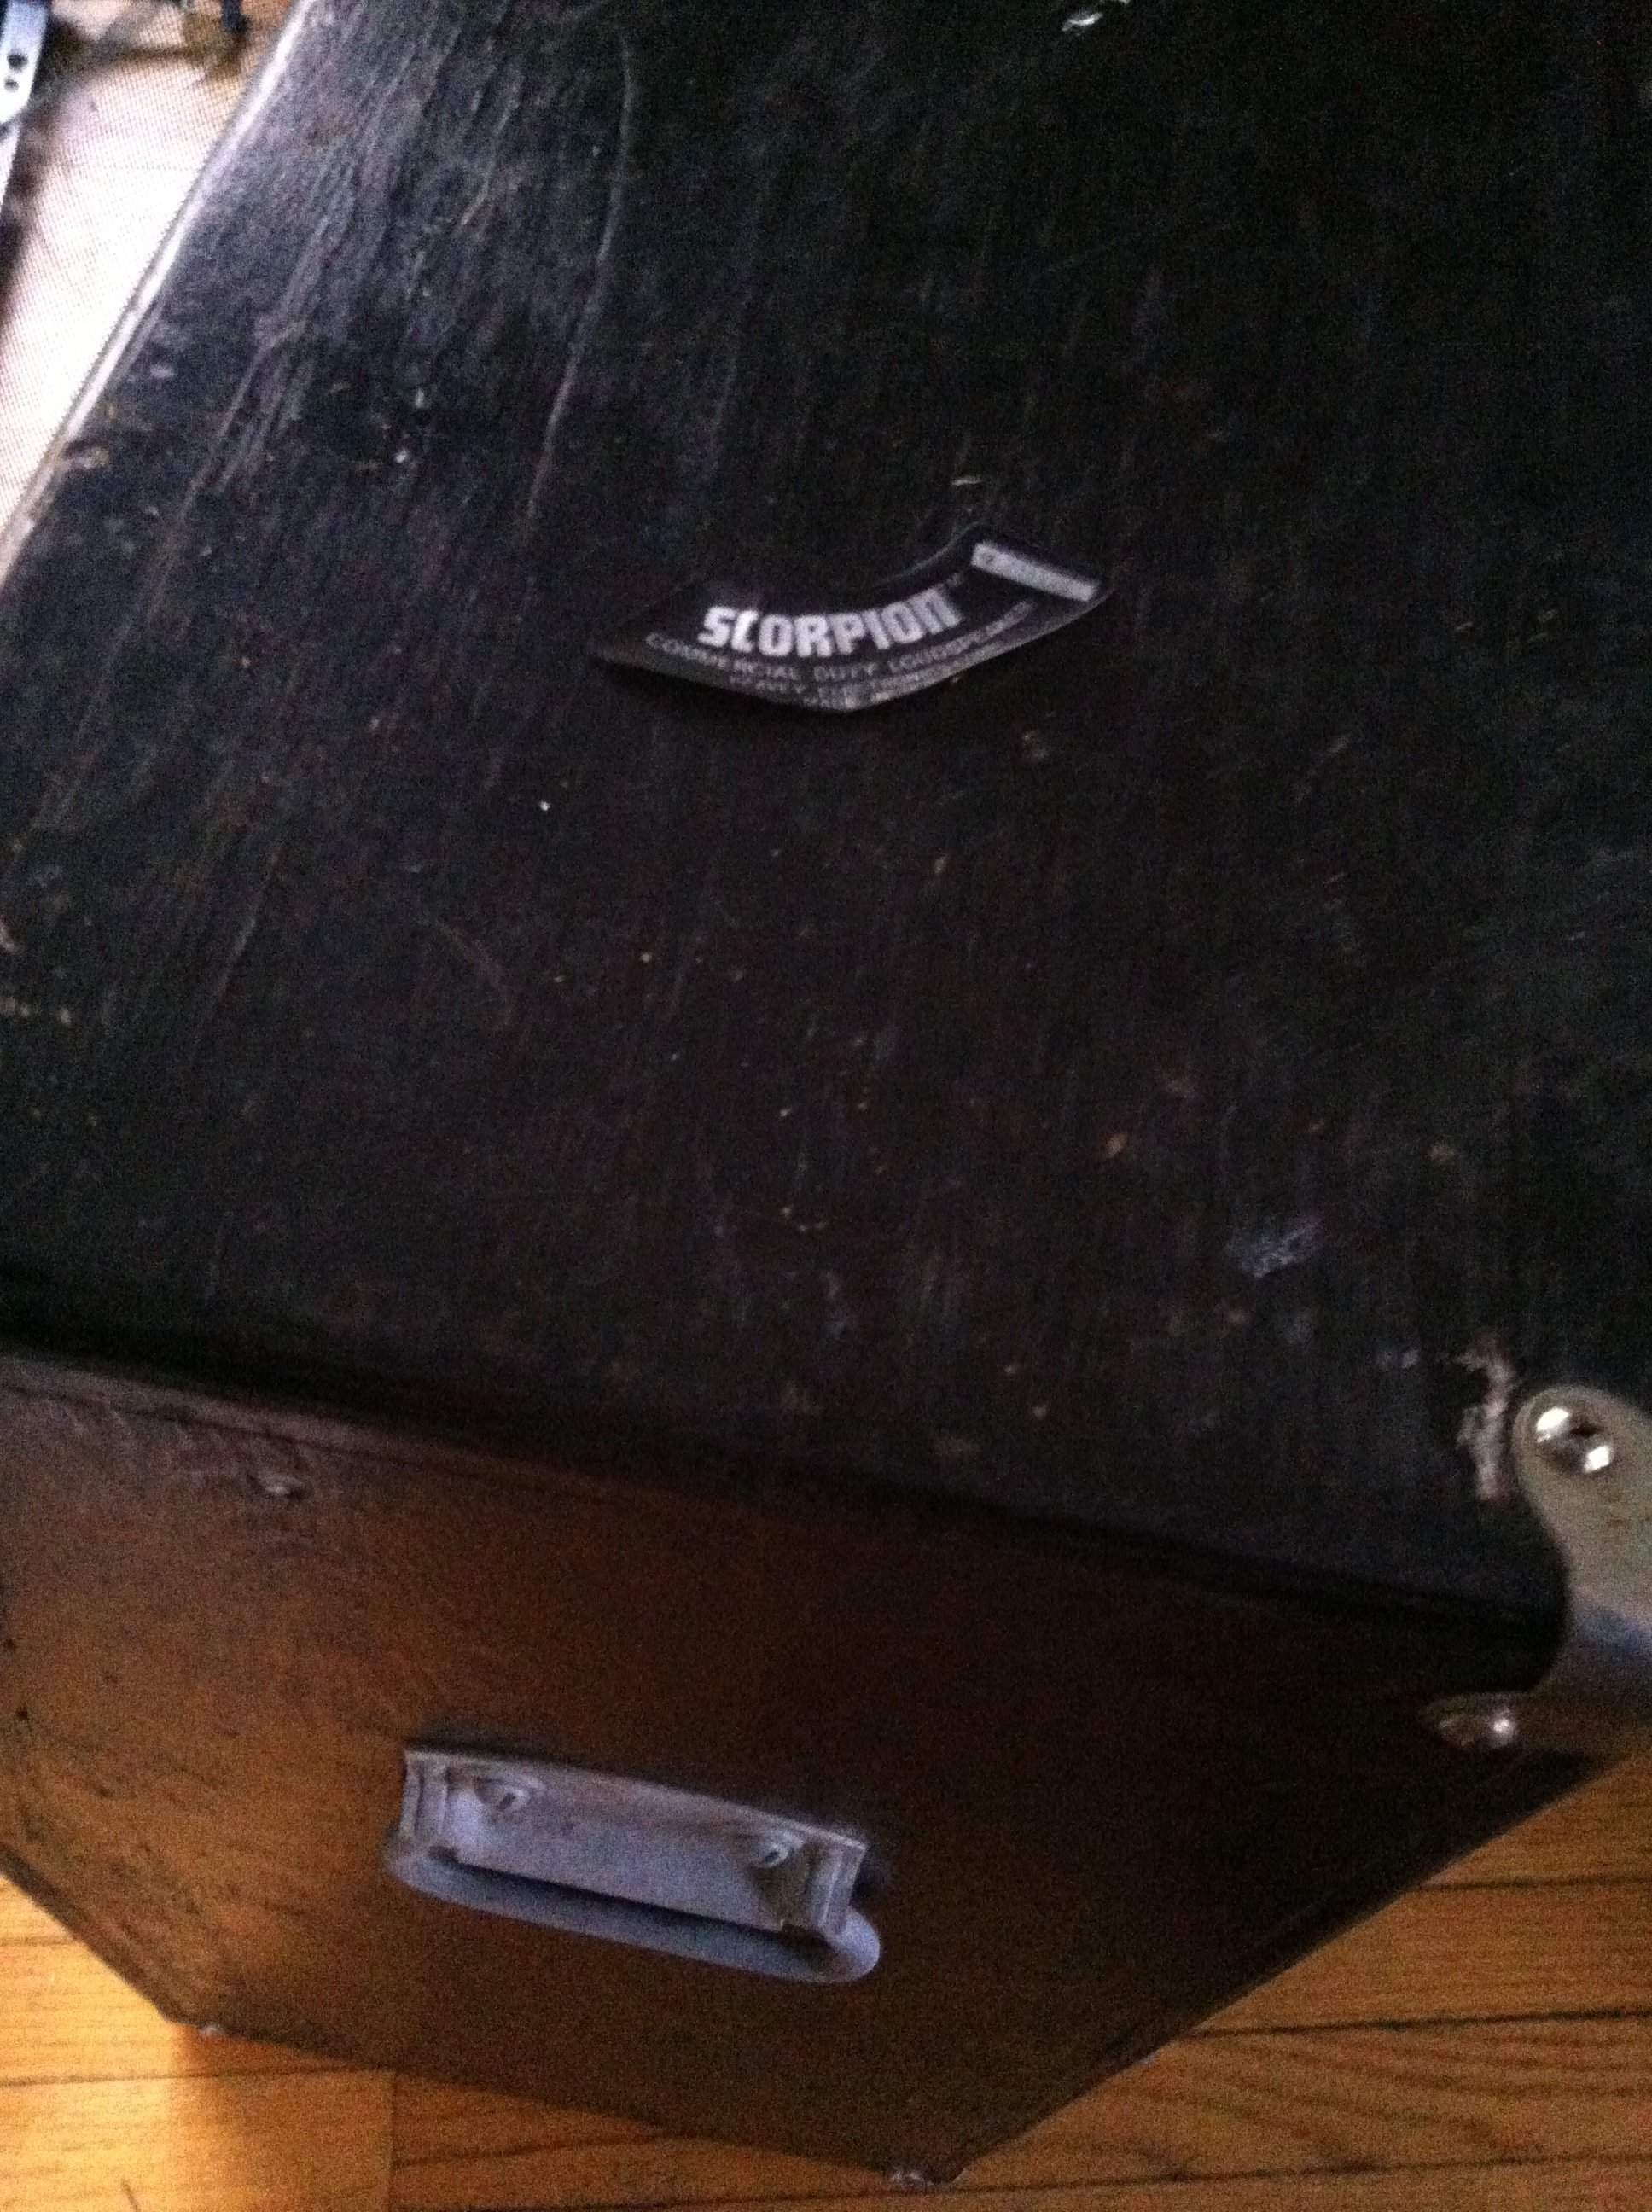 Fender Bandmaster Speaker Cabinet Help Bought A Really Old Peavey Wood Slanted Cabinet 4x12 With 4